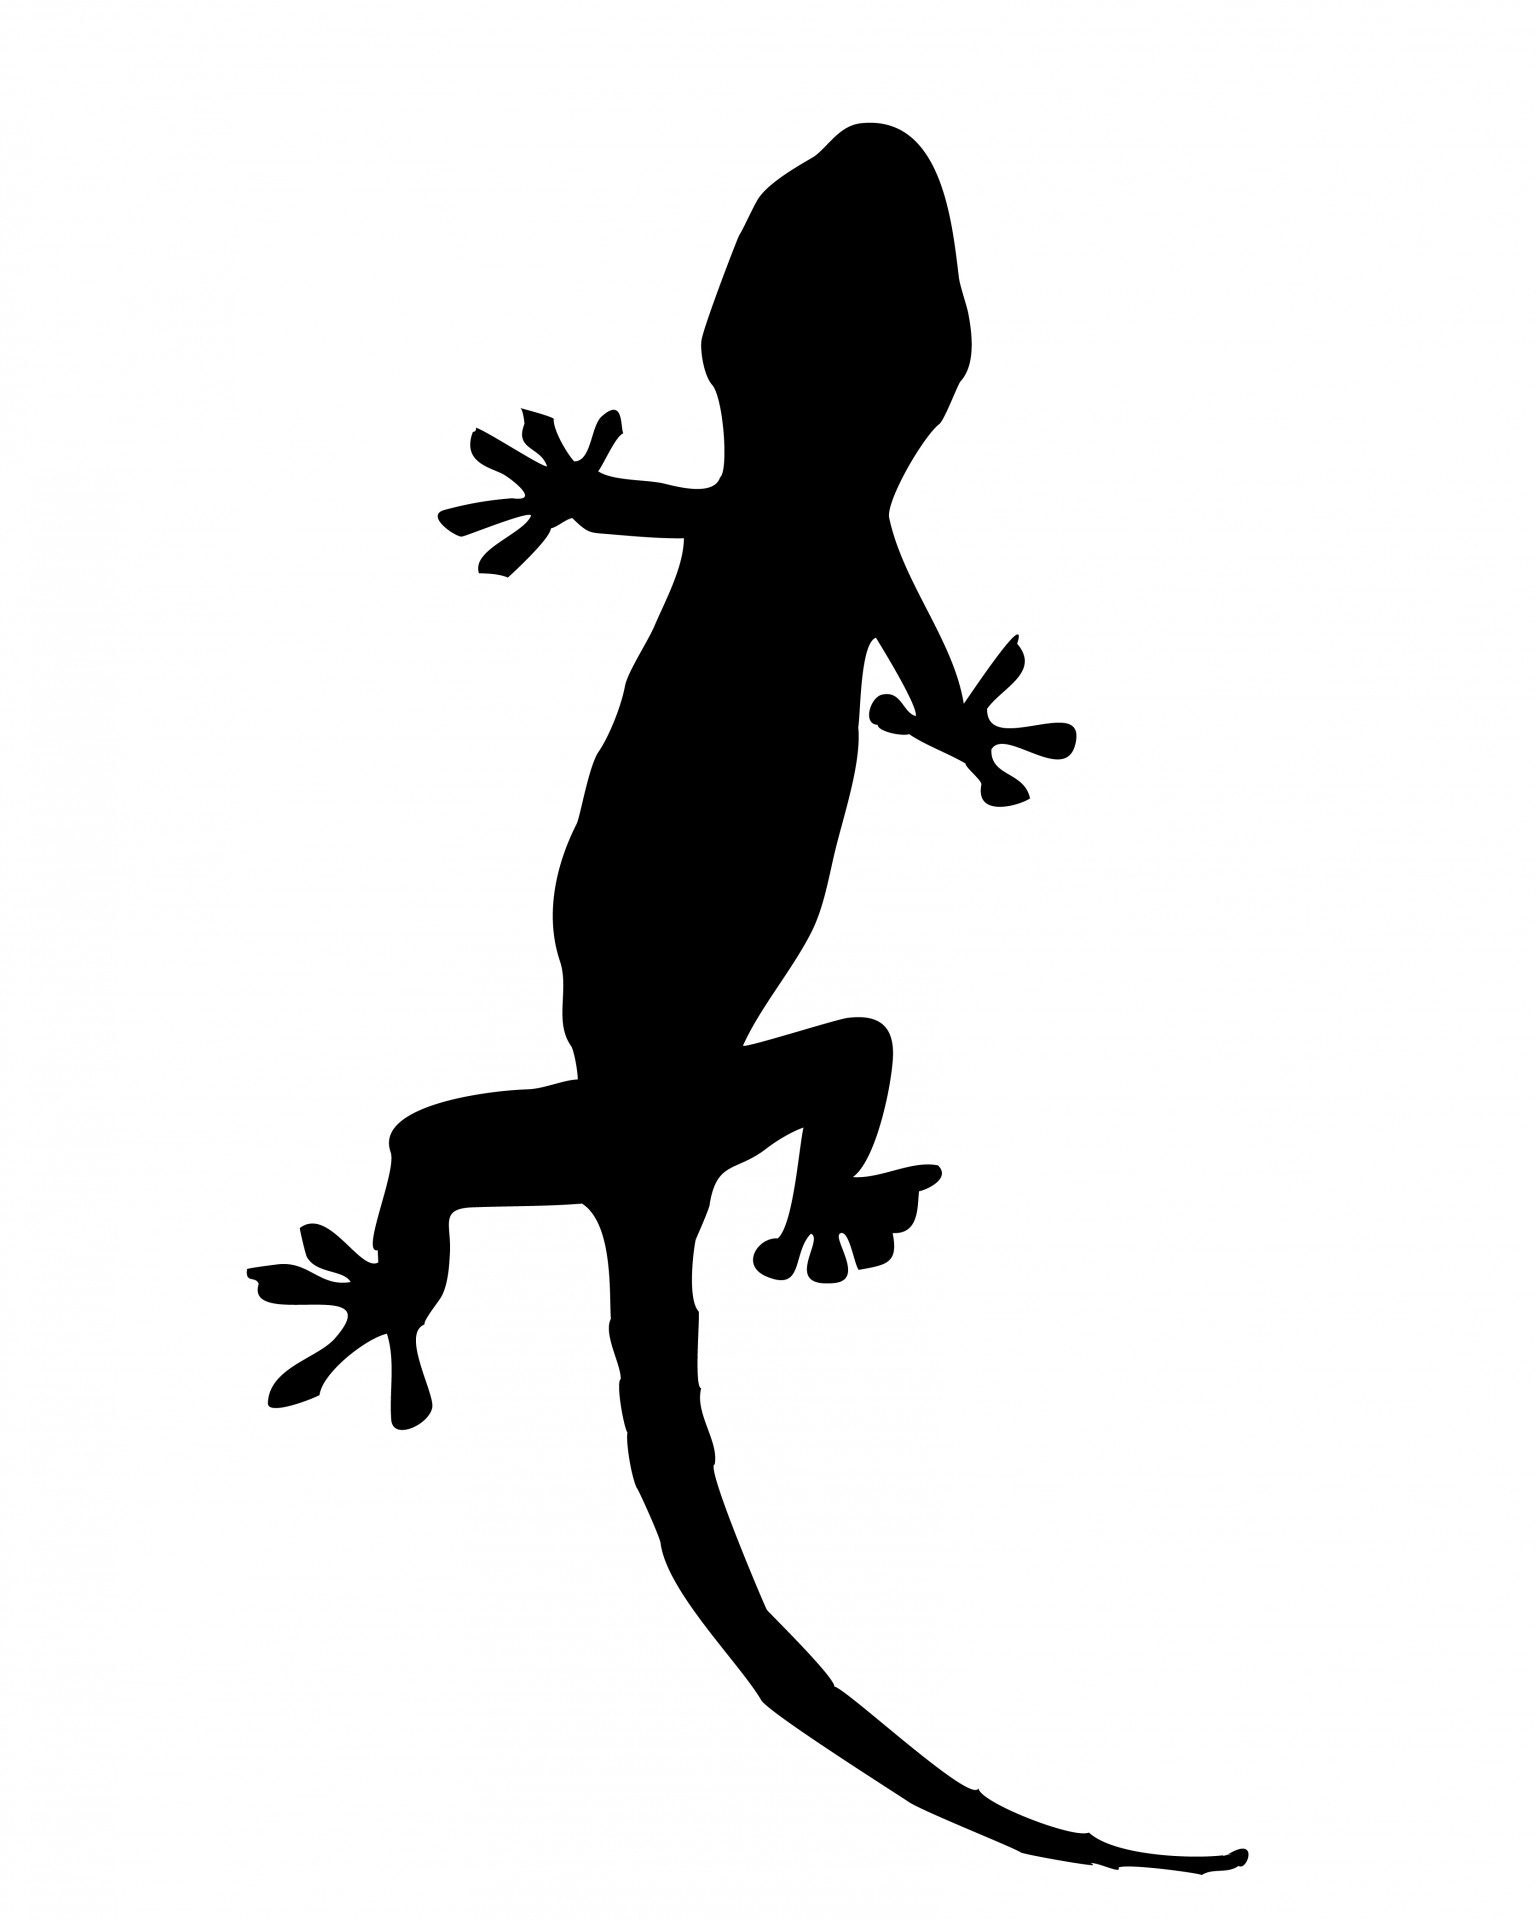 Gecko free royalty free clipart clip royalty free download Free Gecko Cliparts, Download Free Clip Art, Free Clip Art on ... clip royalty free download